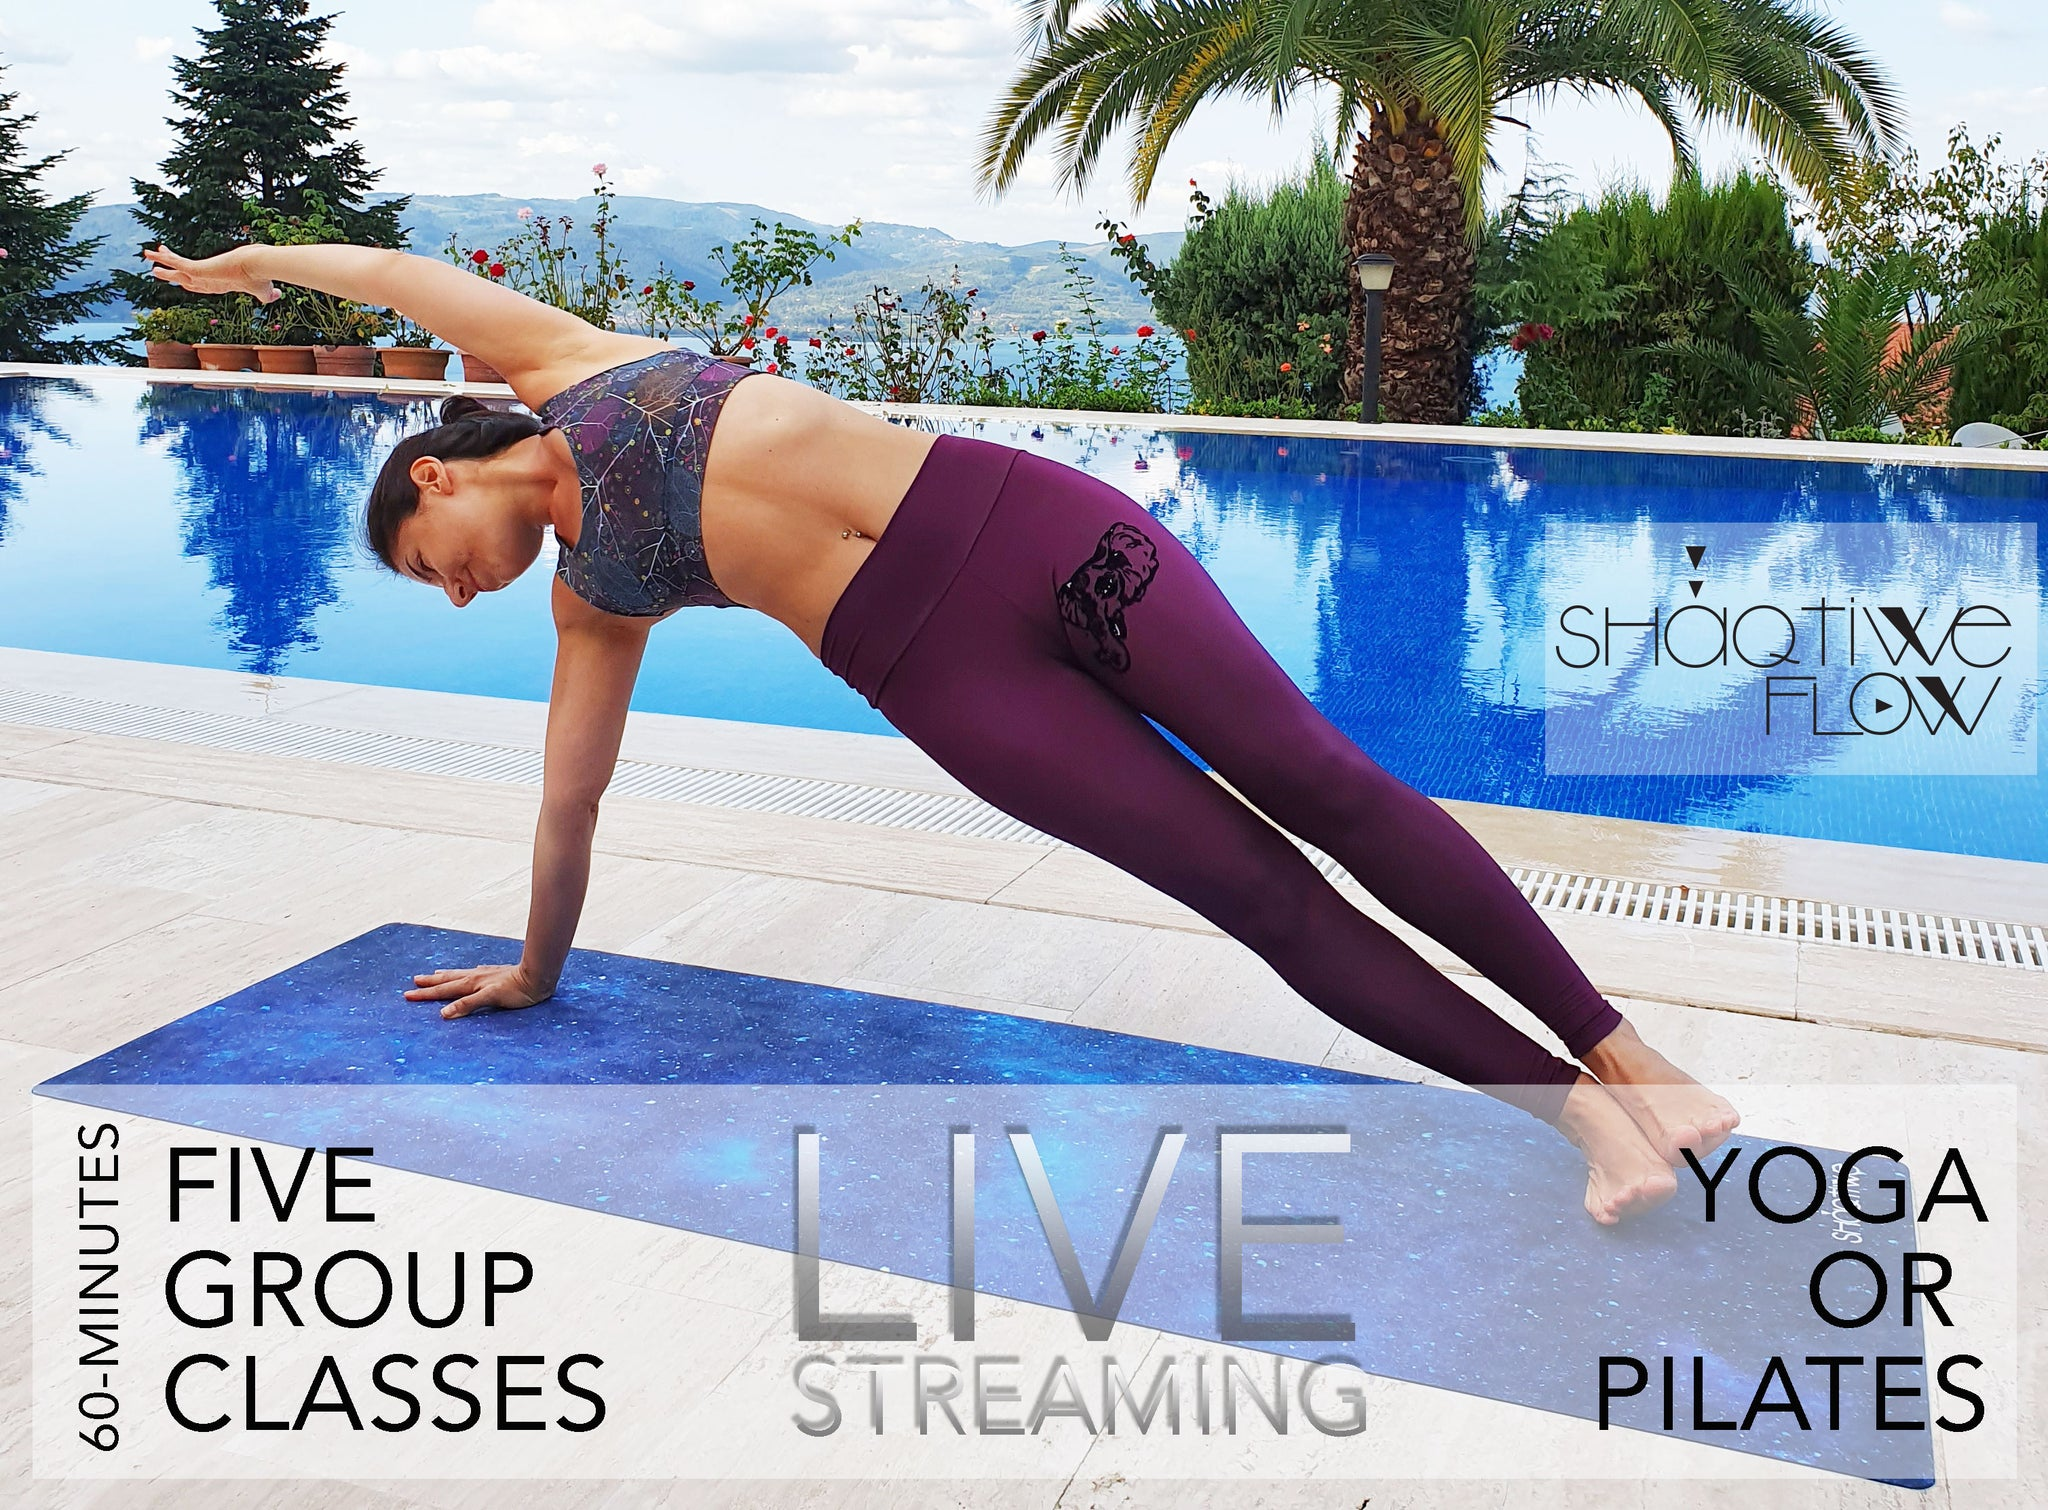 5 GROUP LIVE YOGA or PILATES CLASS